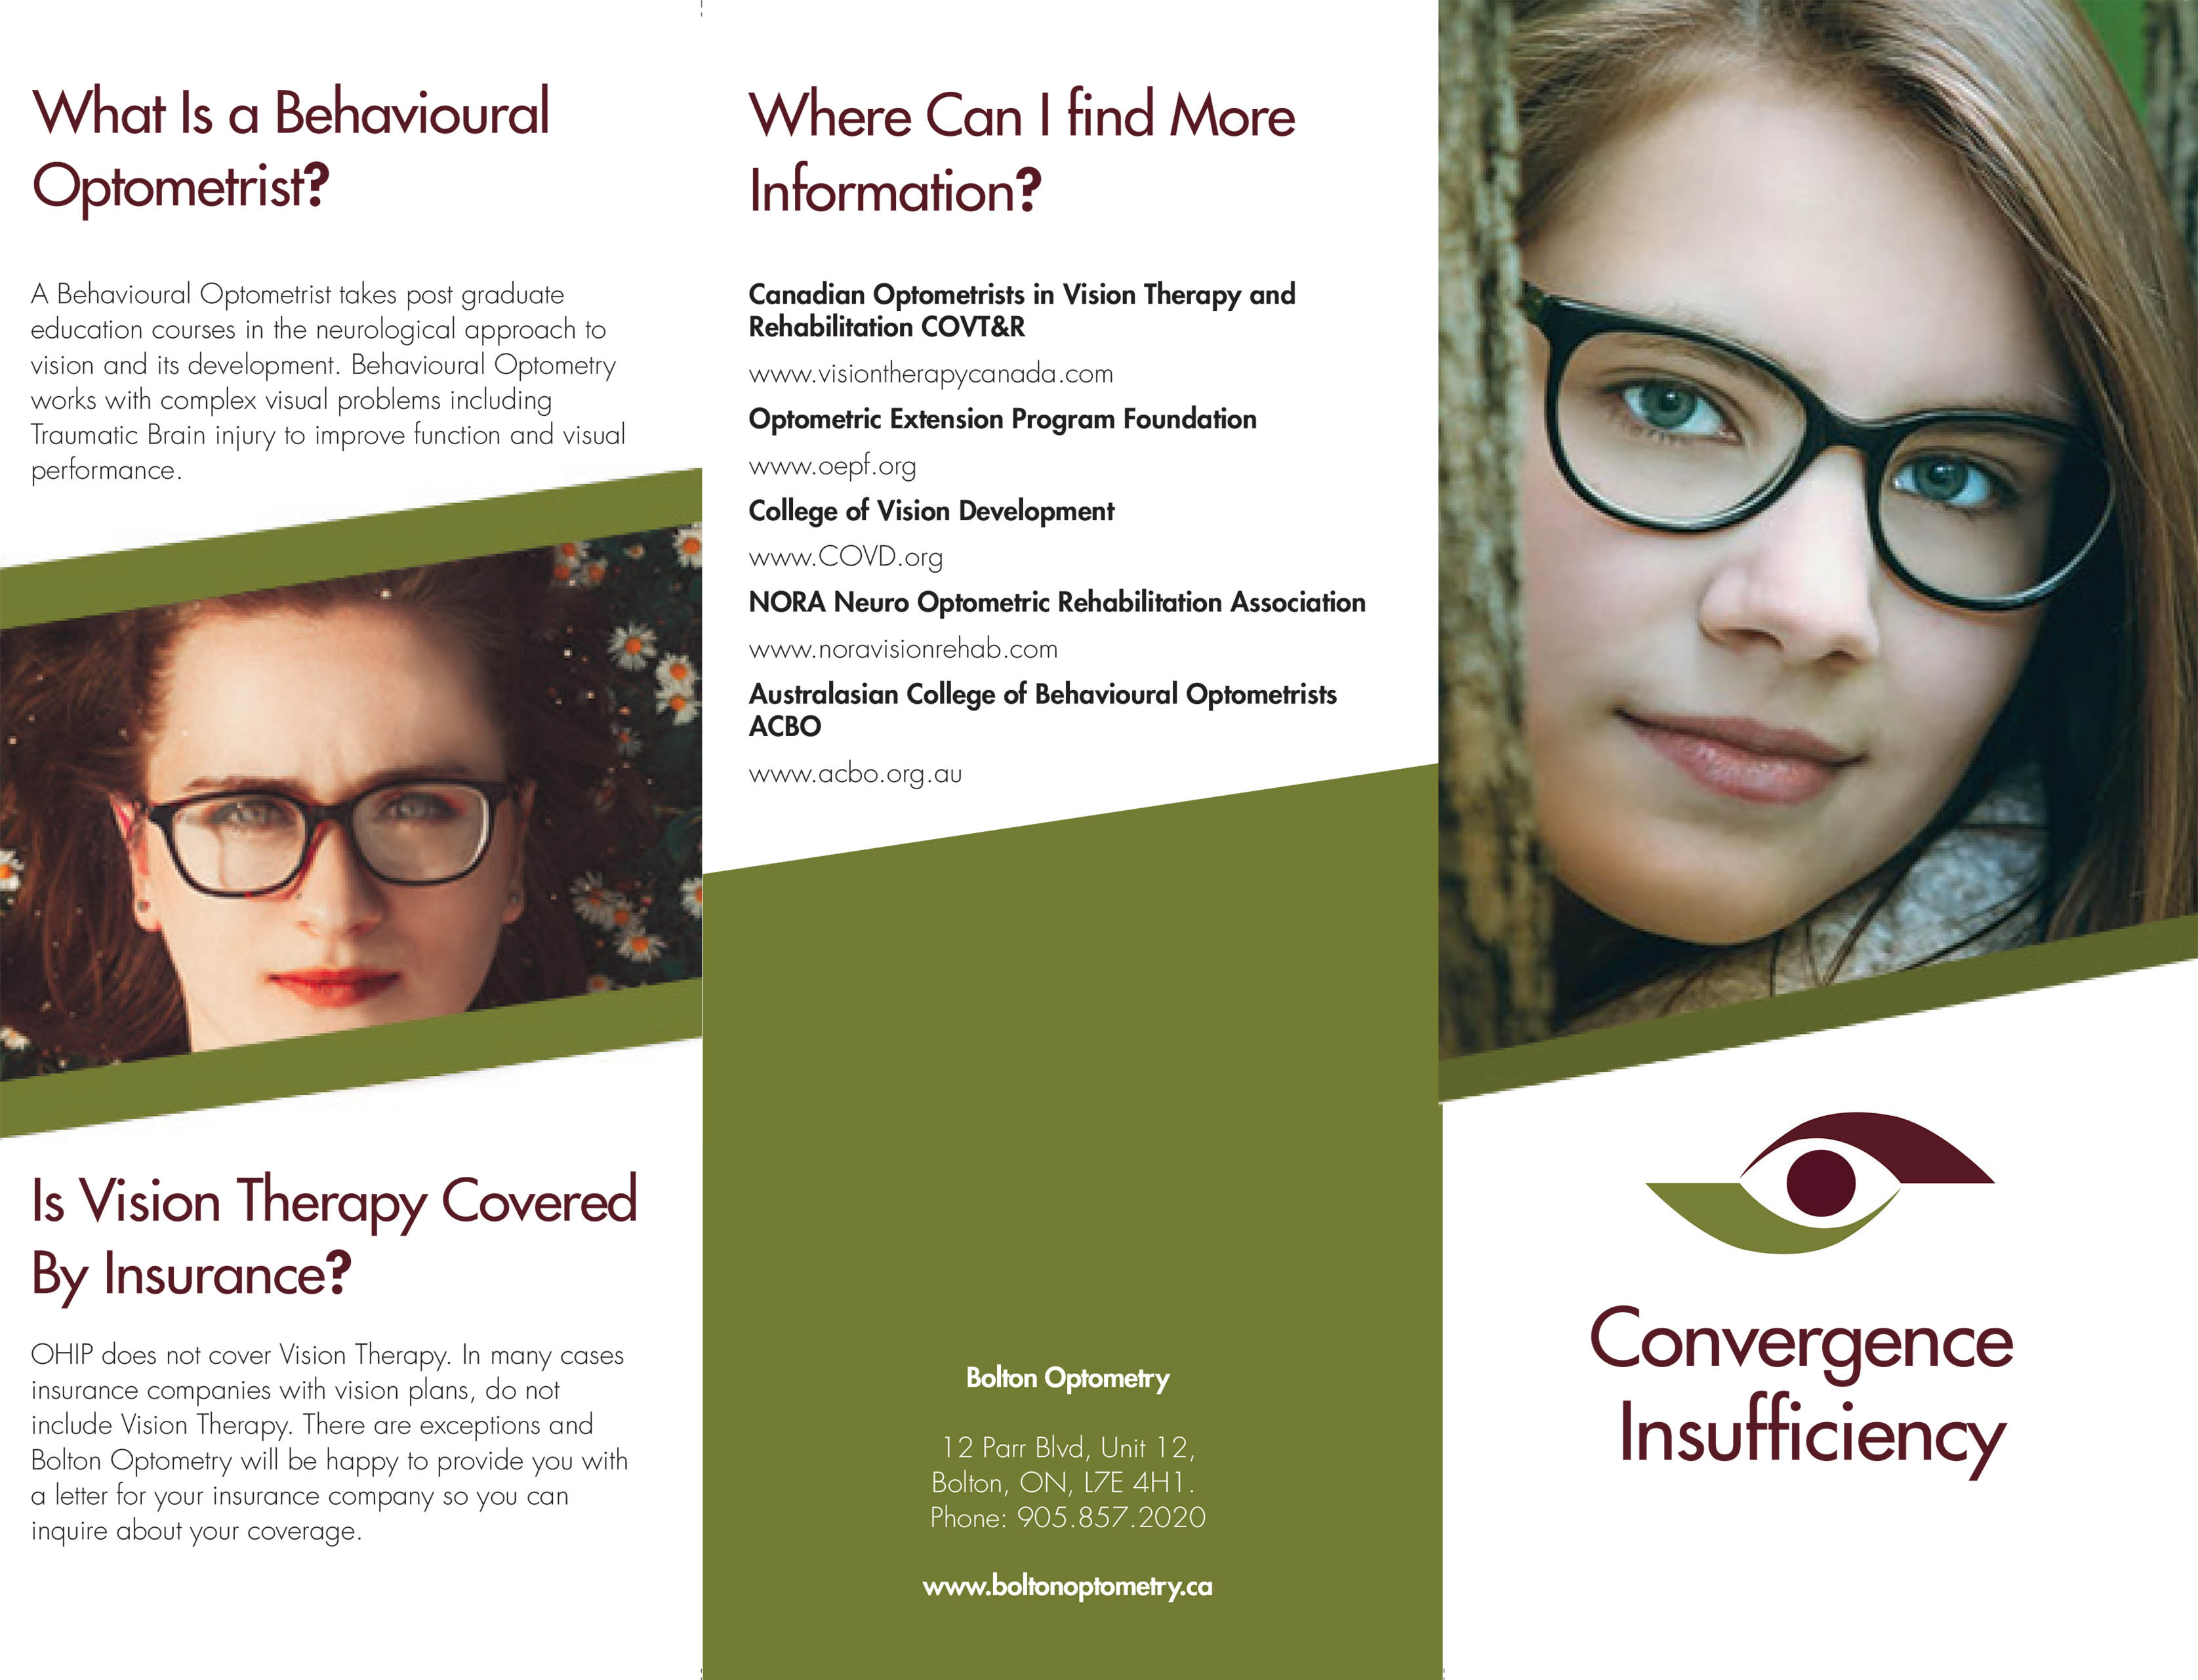 TriFold Convergence Insufficiency Leaflet 2